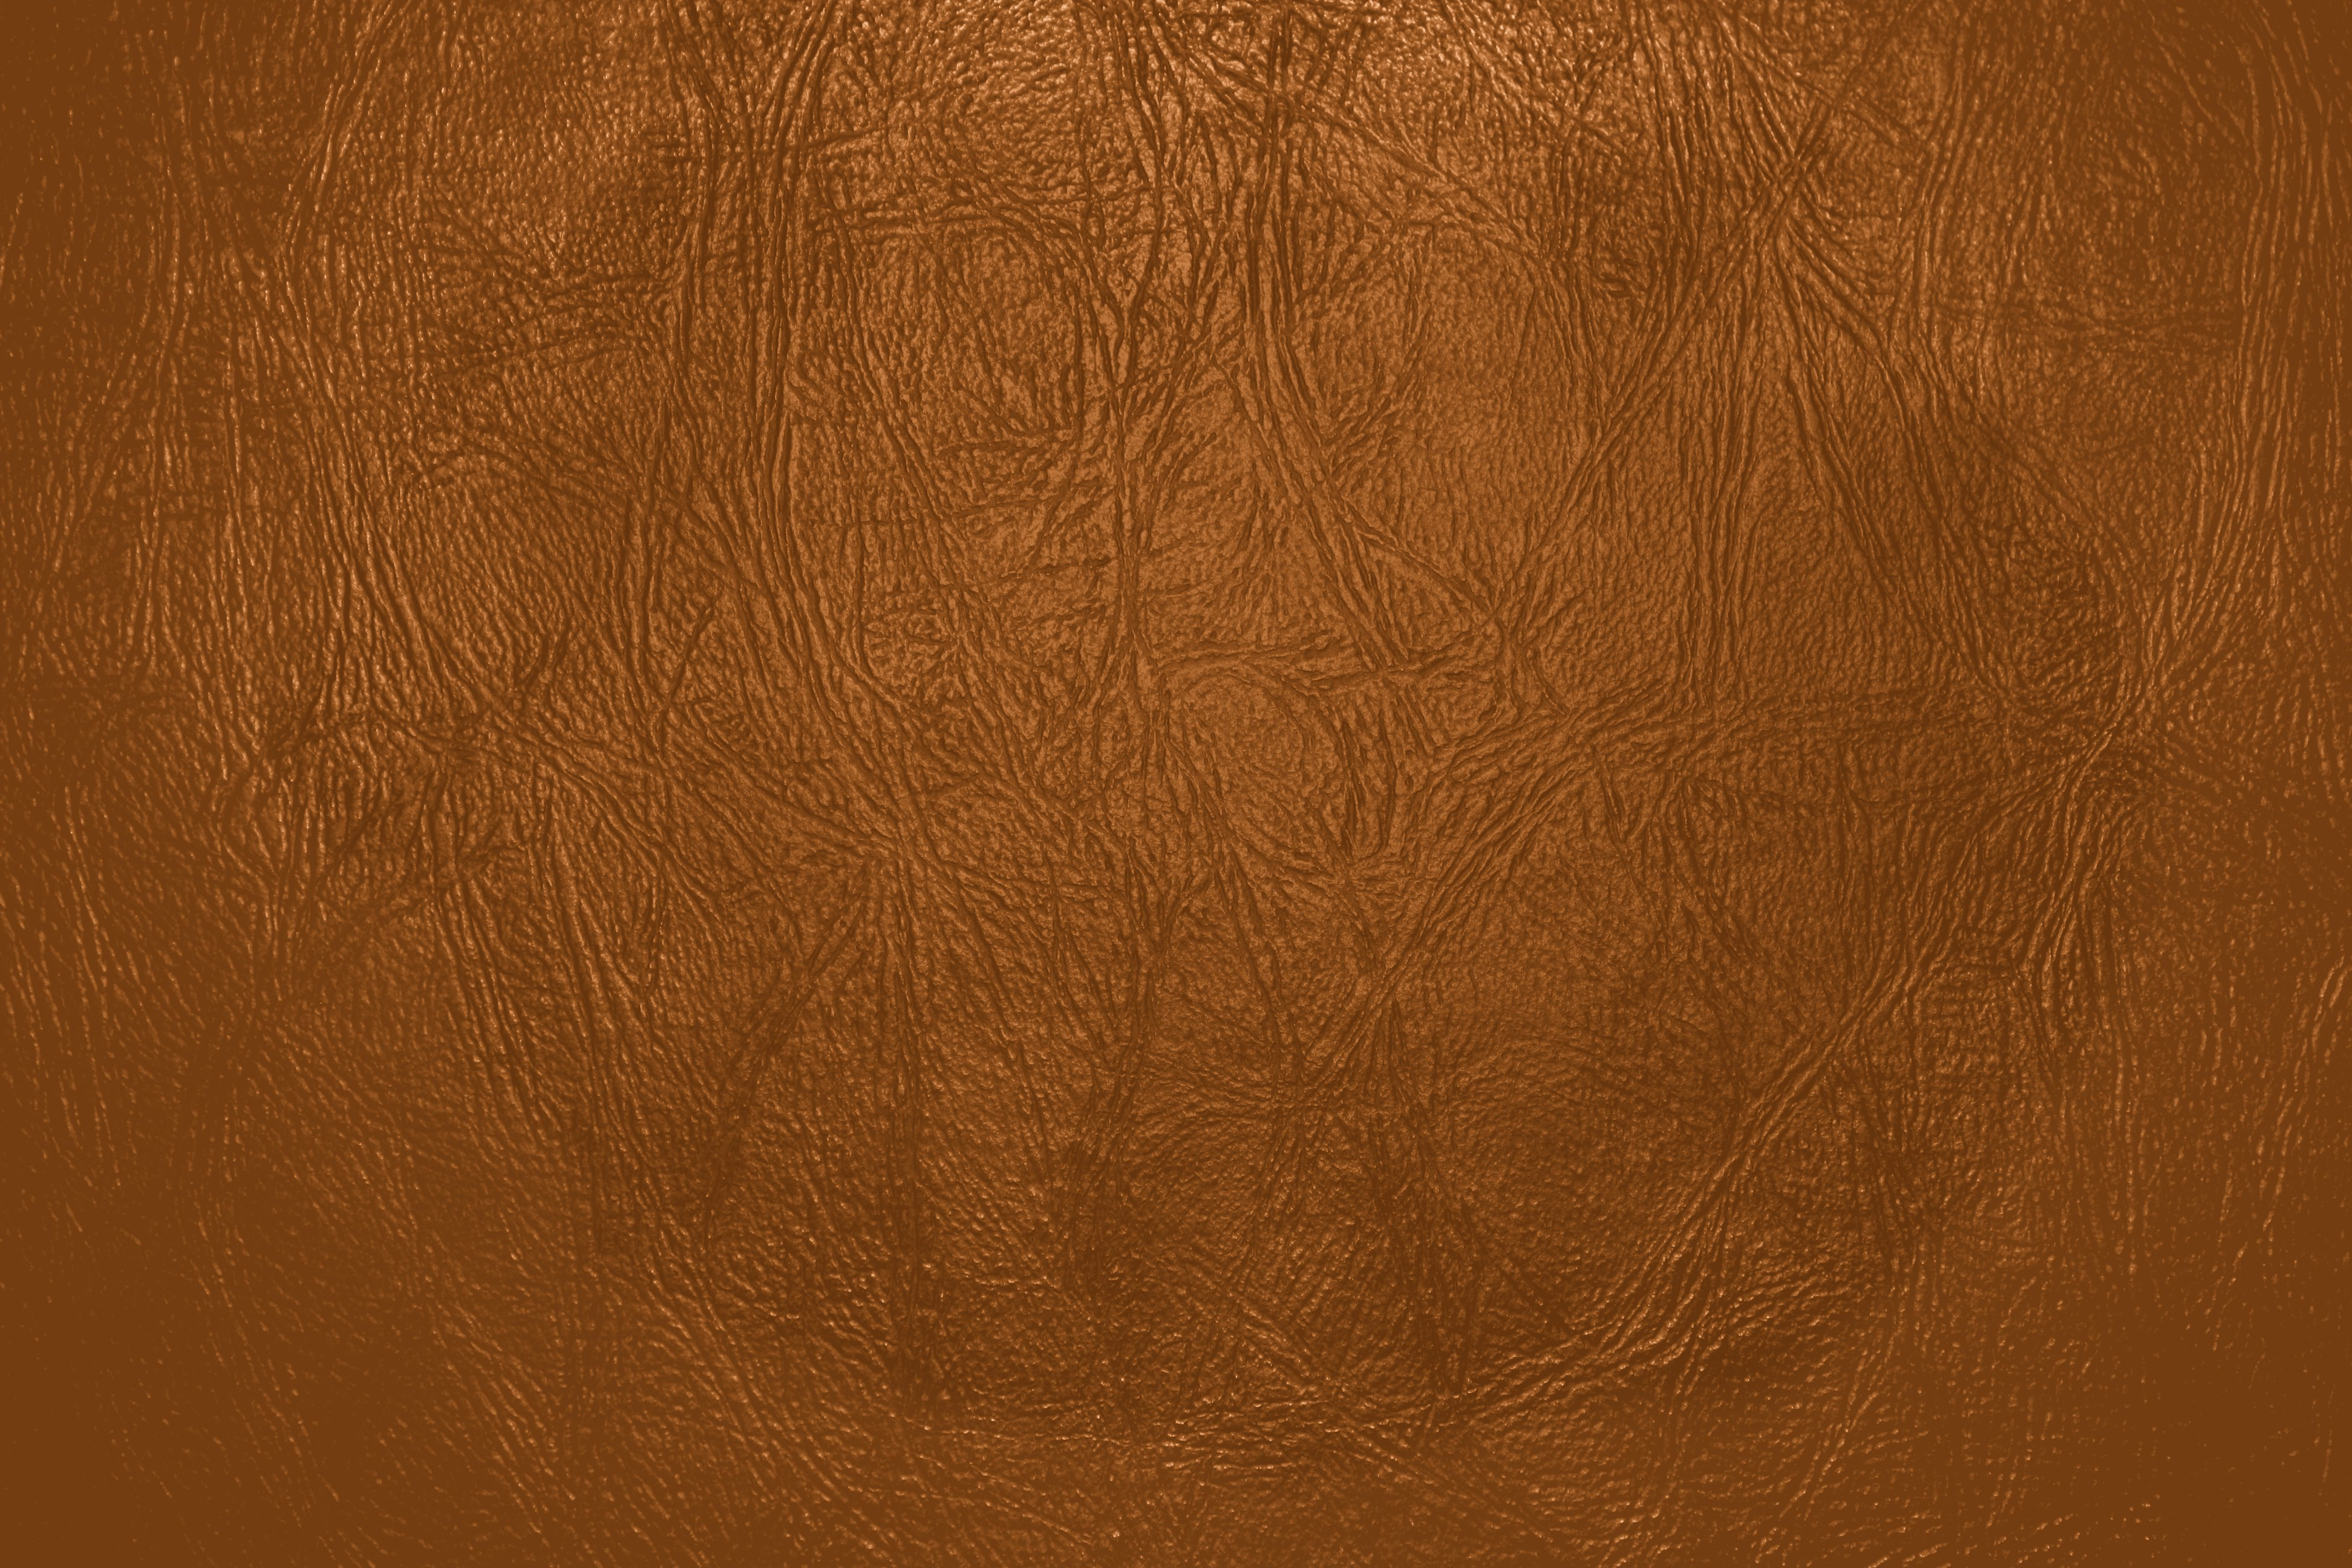 Rust Orange Leather Close Up Texture Picture | Free ...